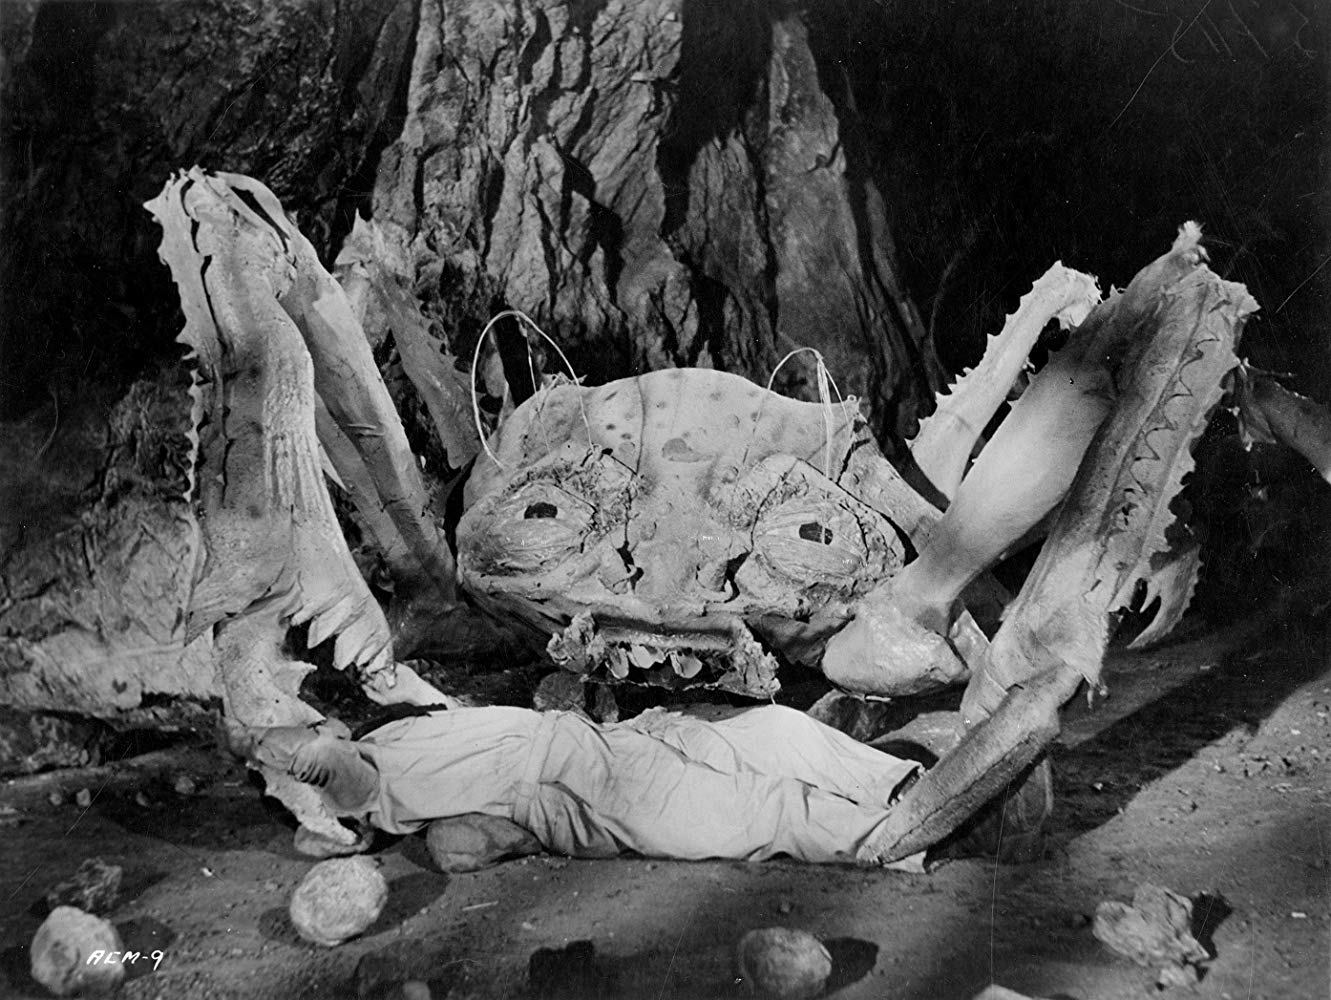 One of the crab monsters from Attack of the Crab Monsters (1957)